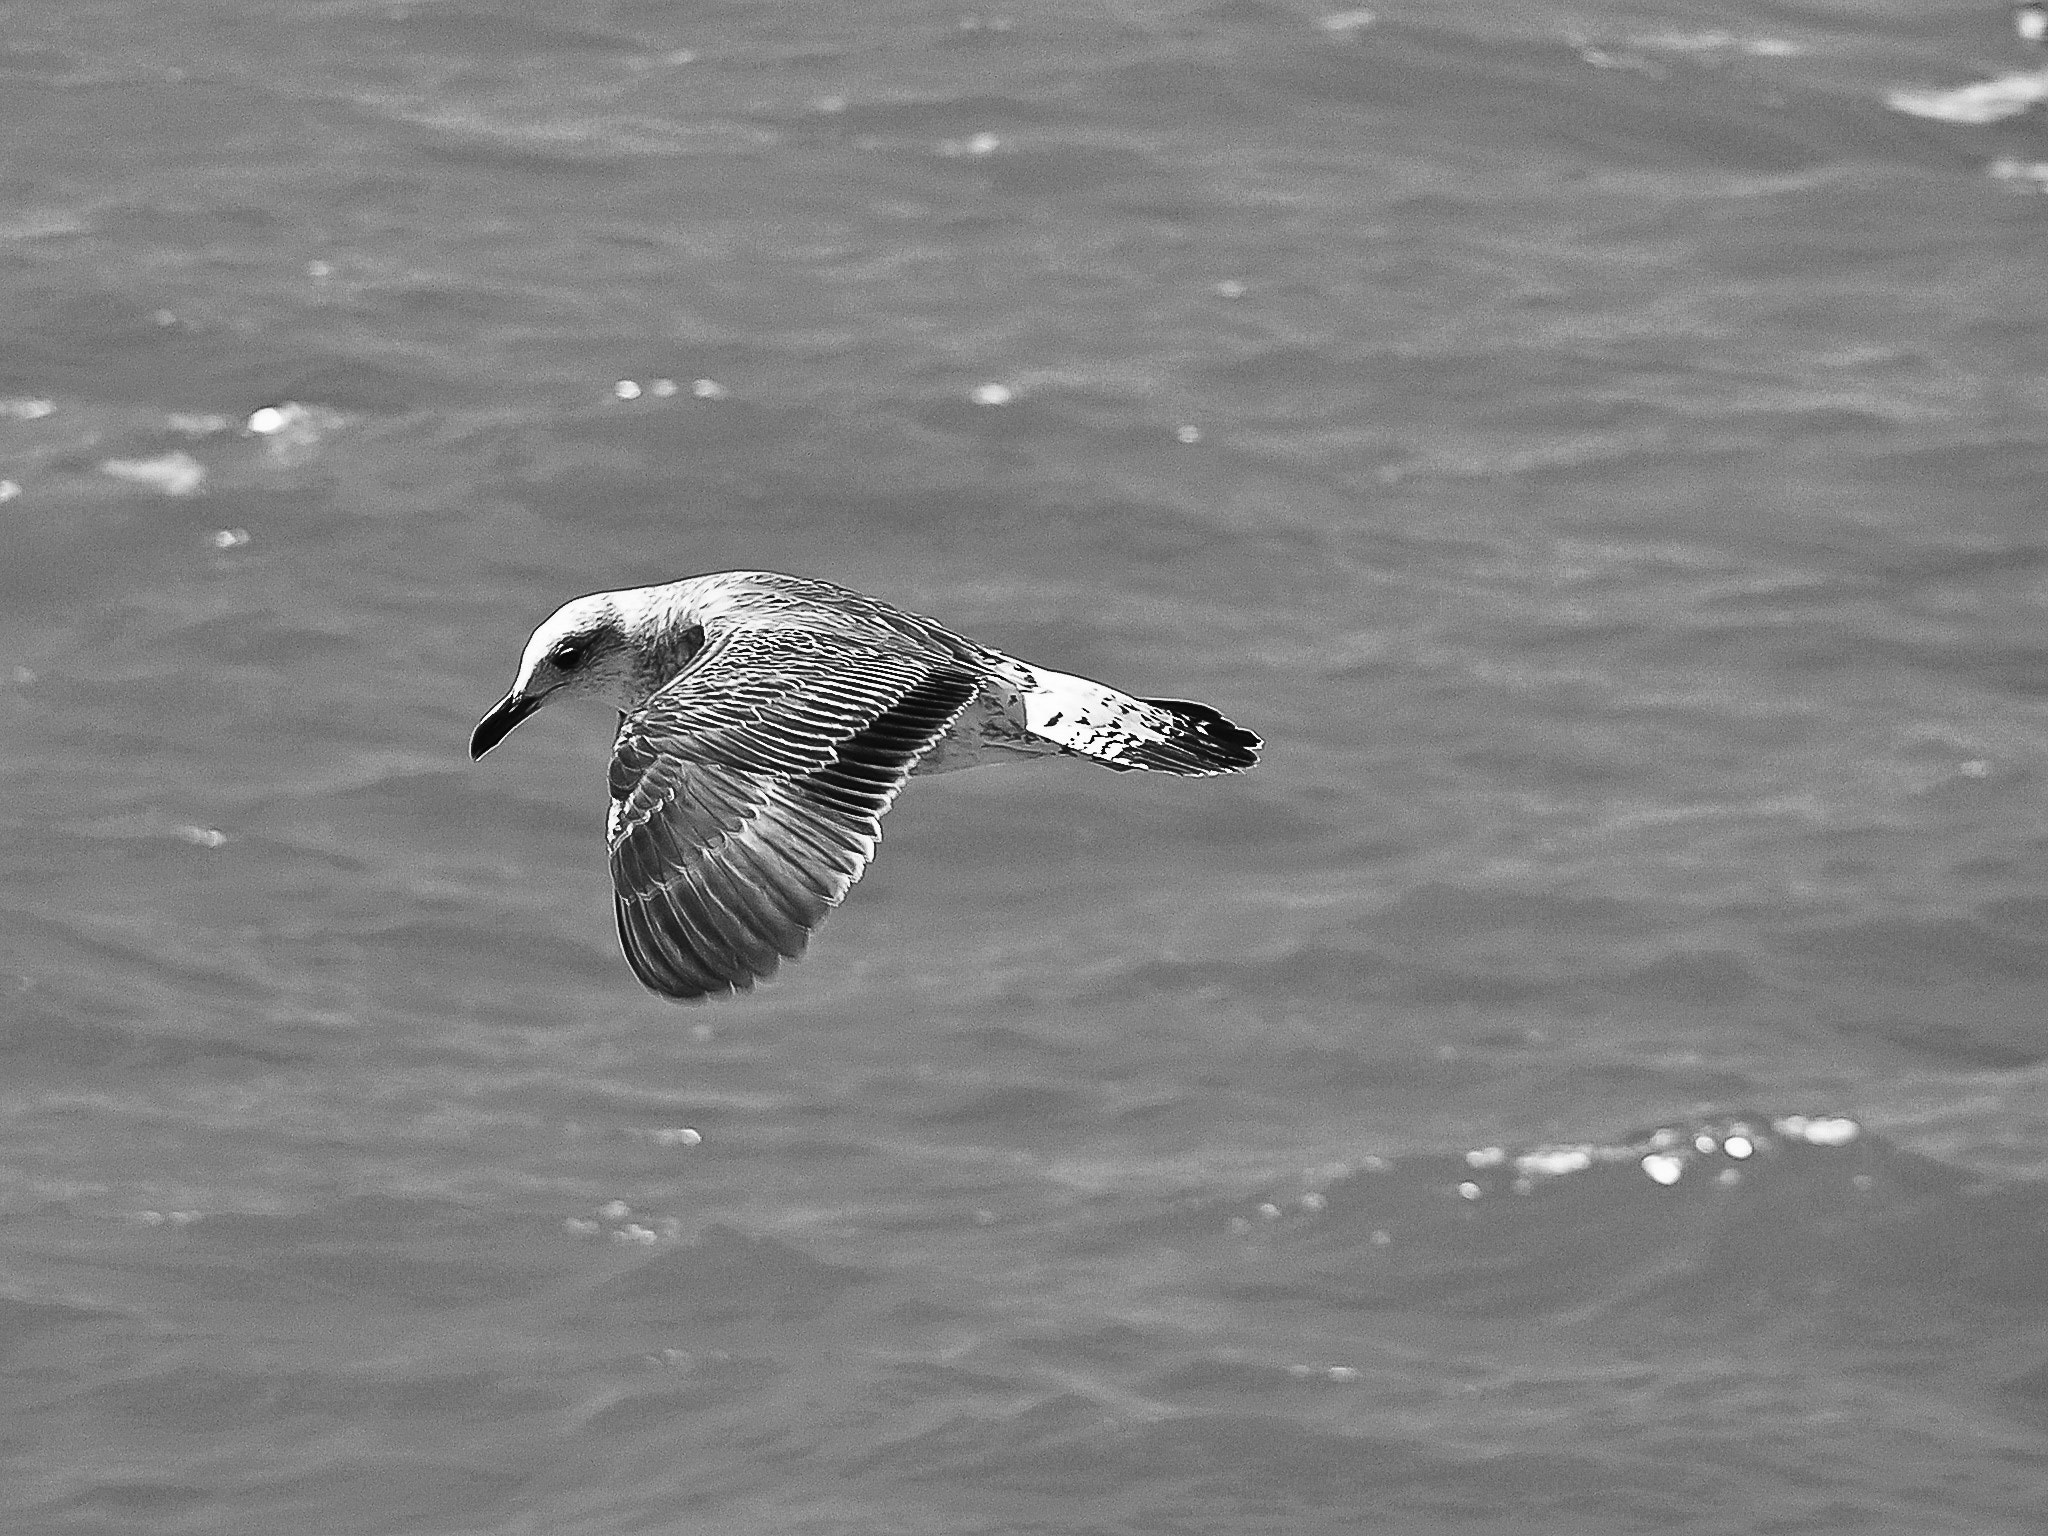 Photograph The flight of the seagull!... by José Covas on 500px